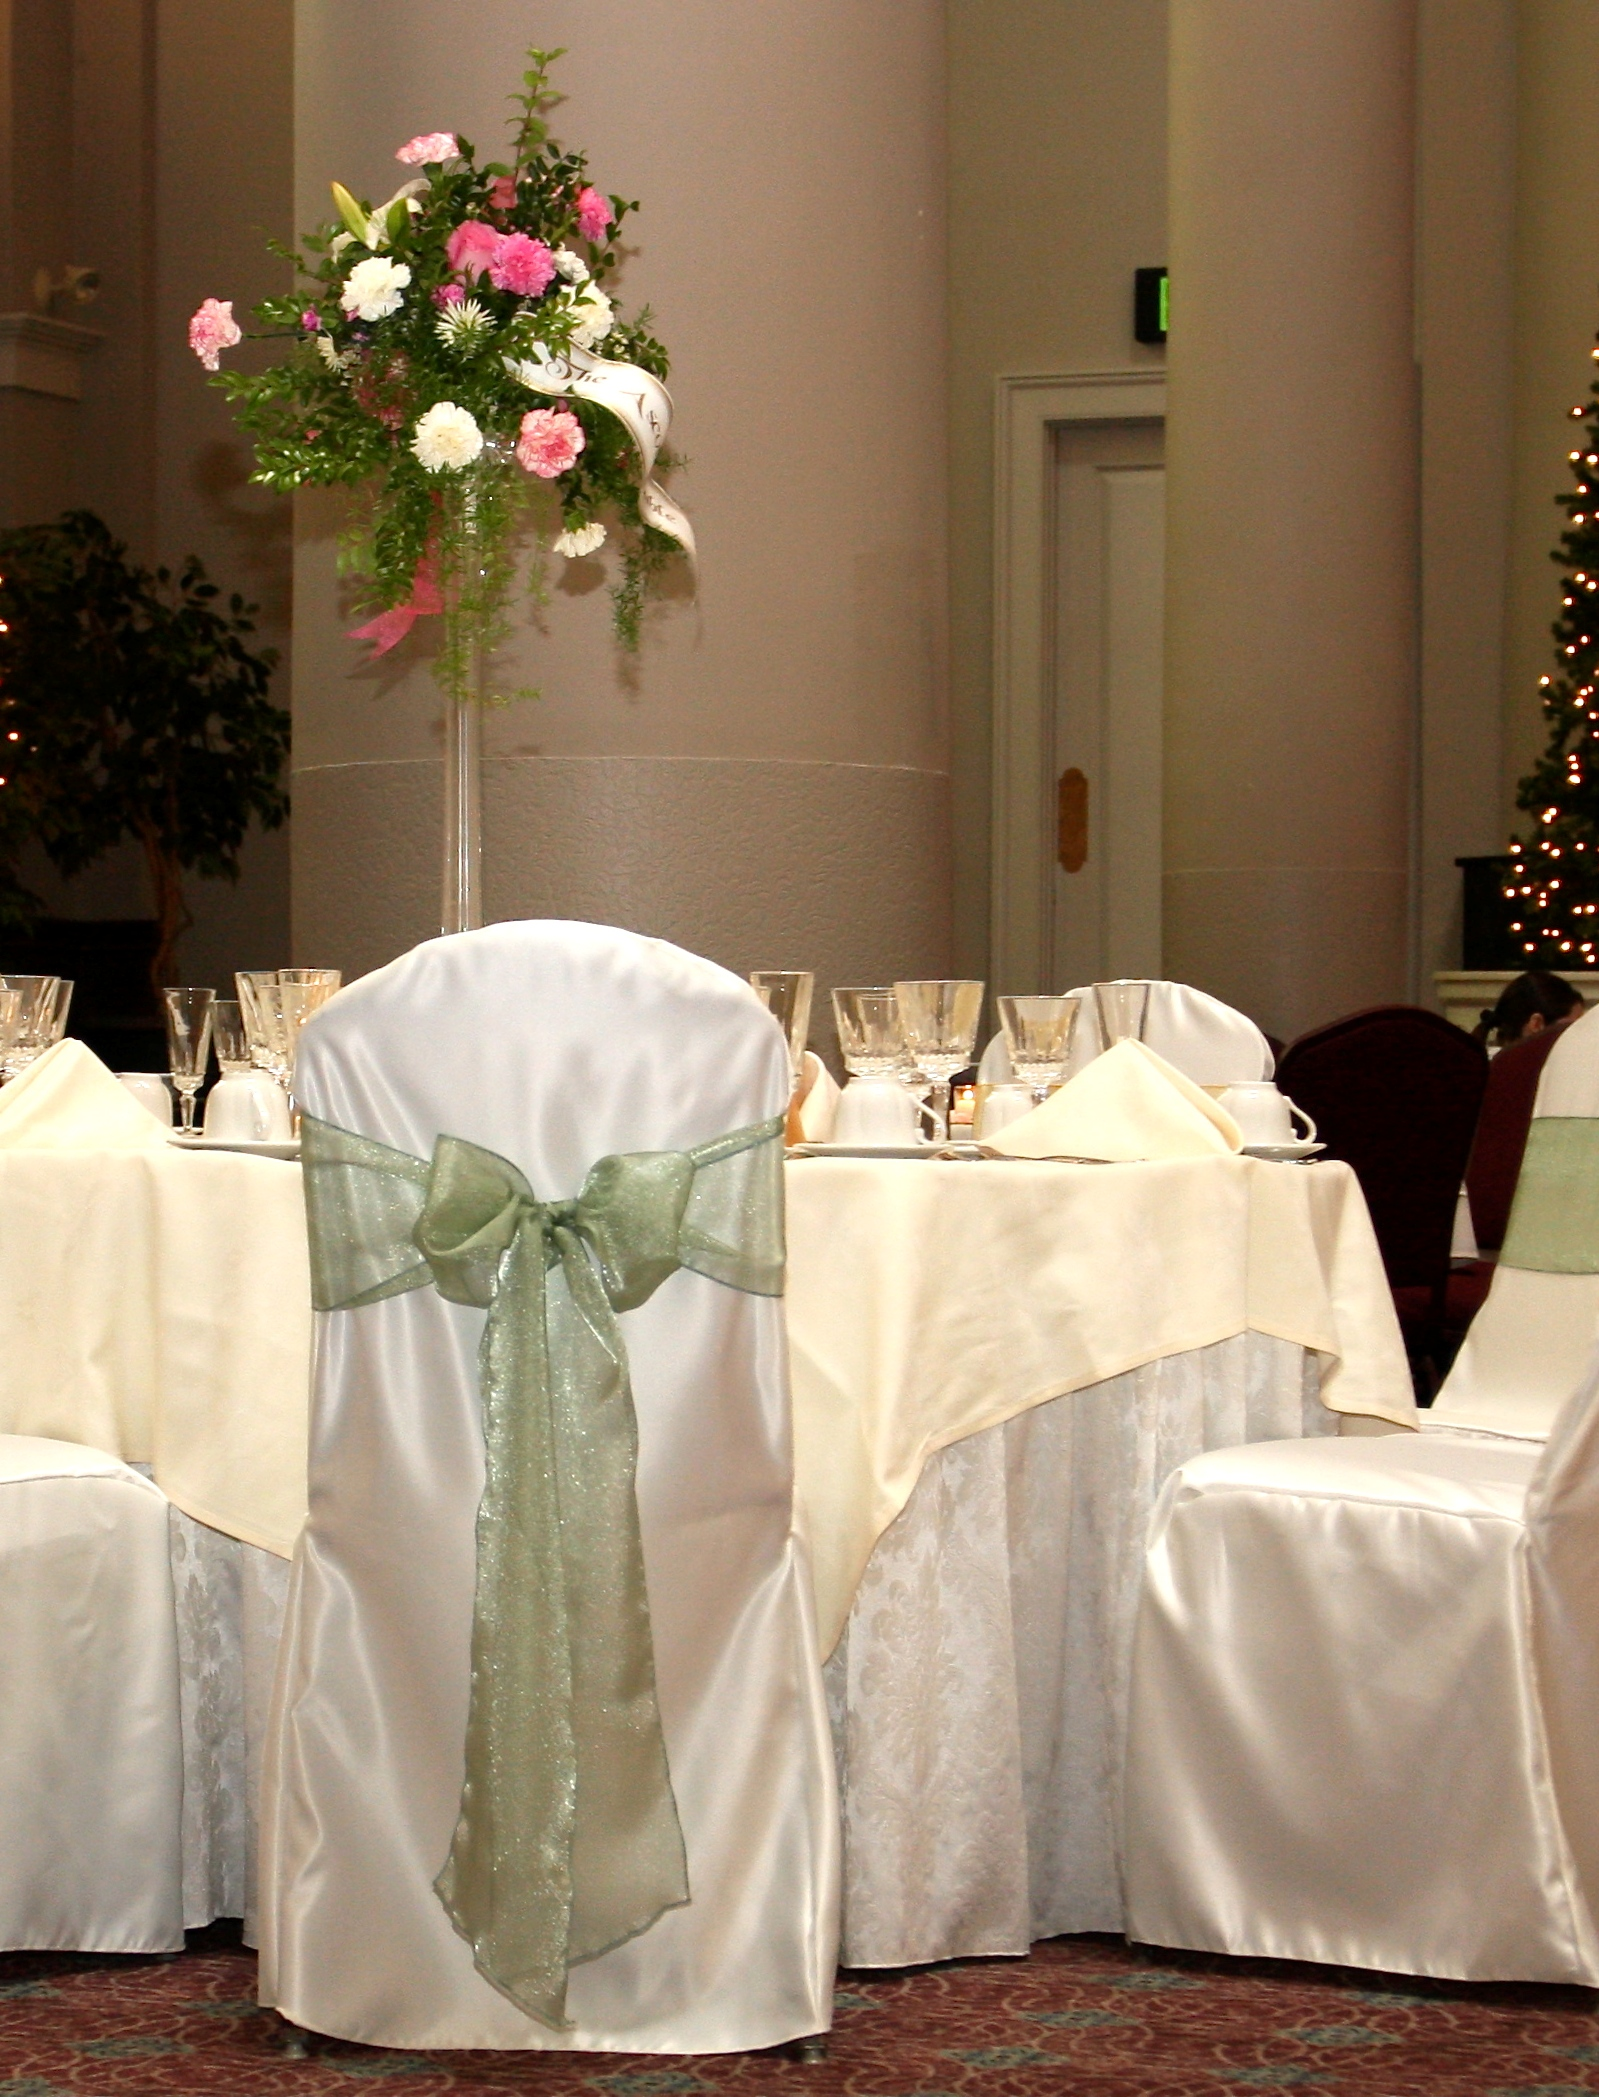 chair covers sage green retro patio chairs pittsburgh services